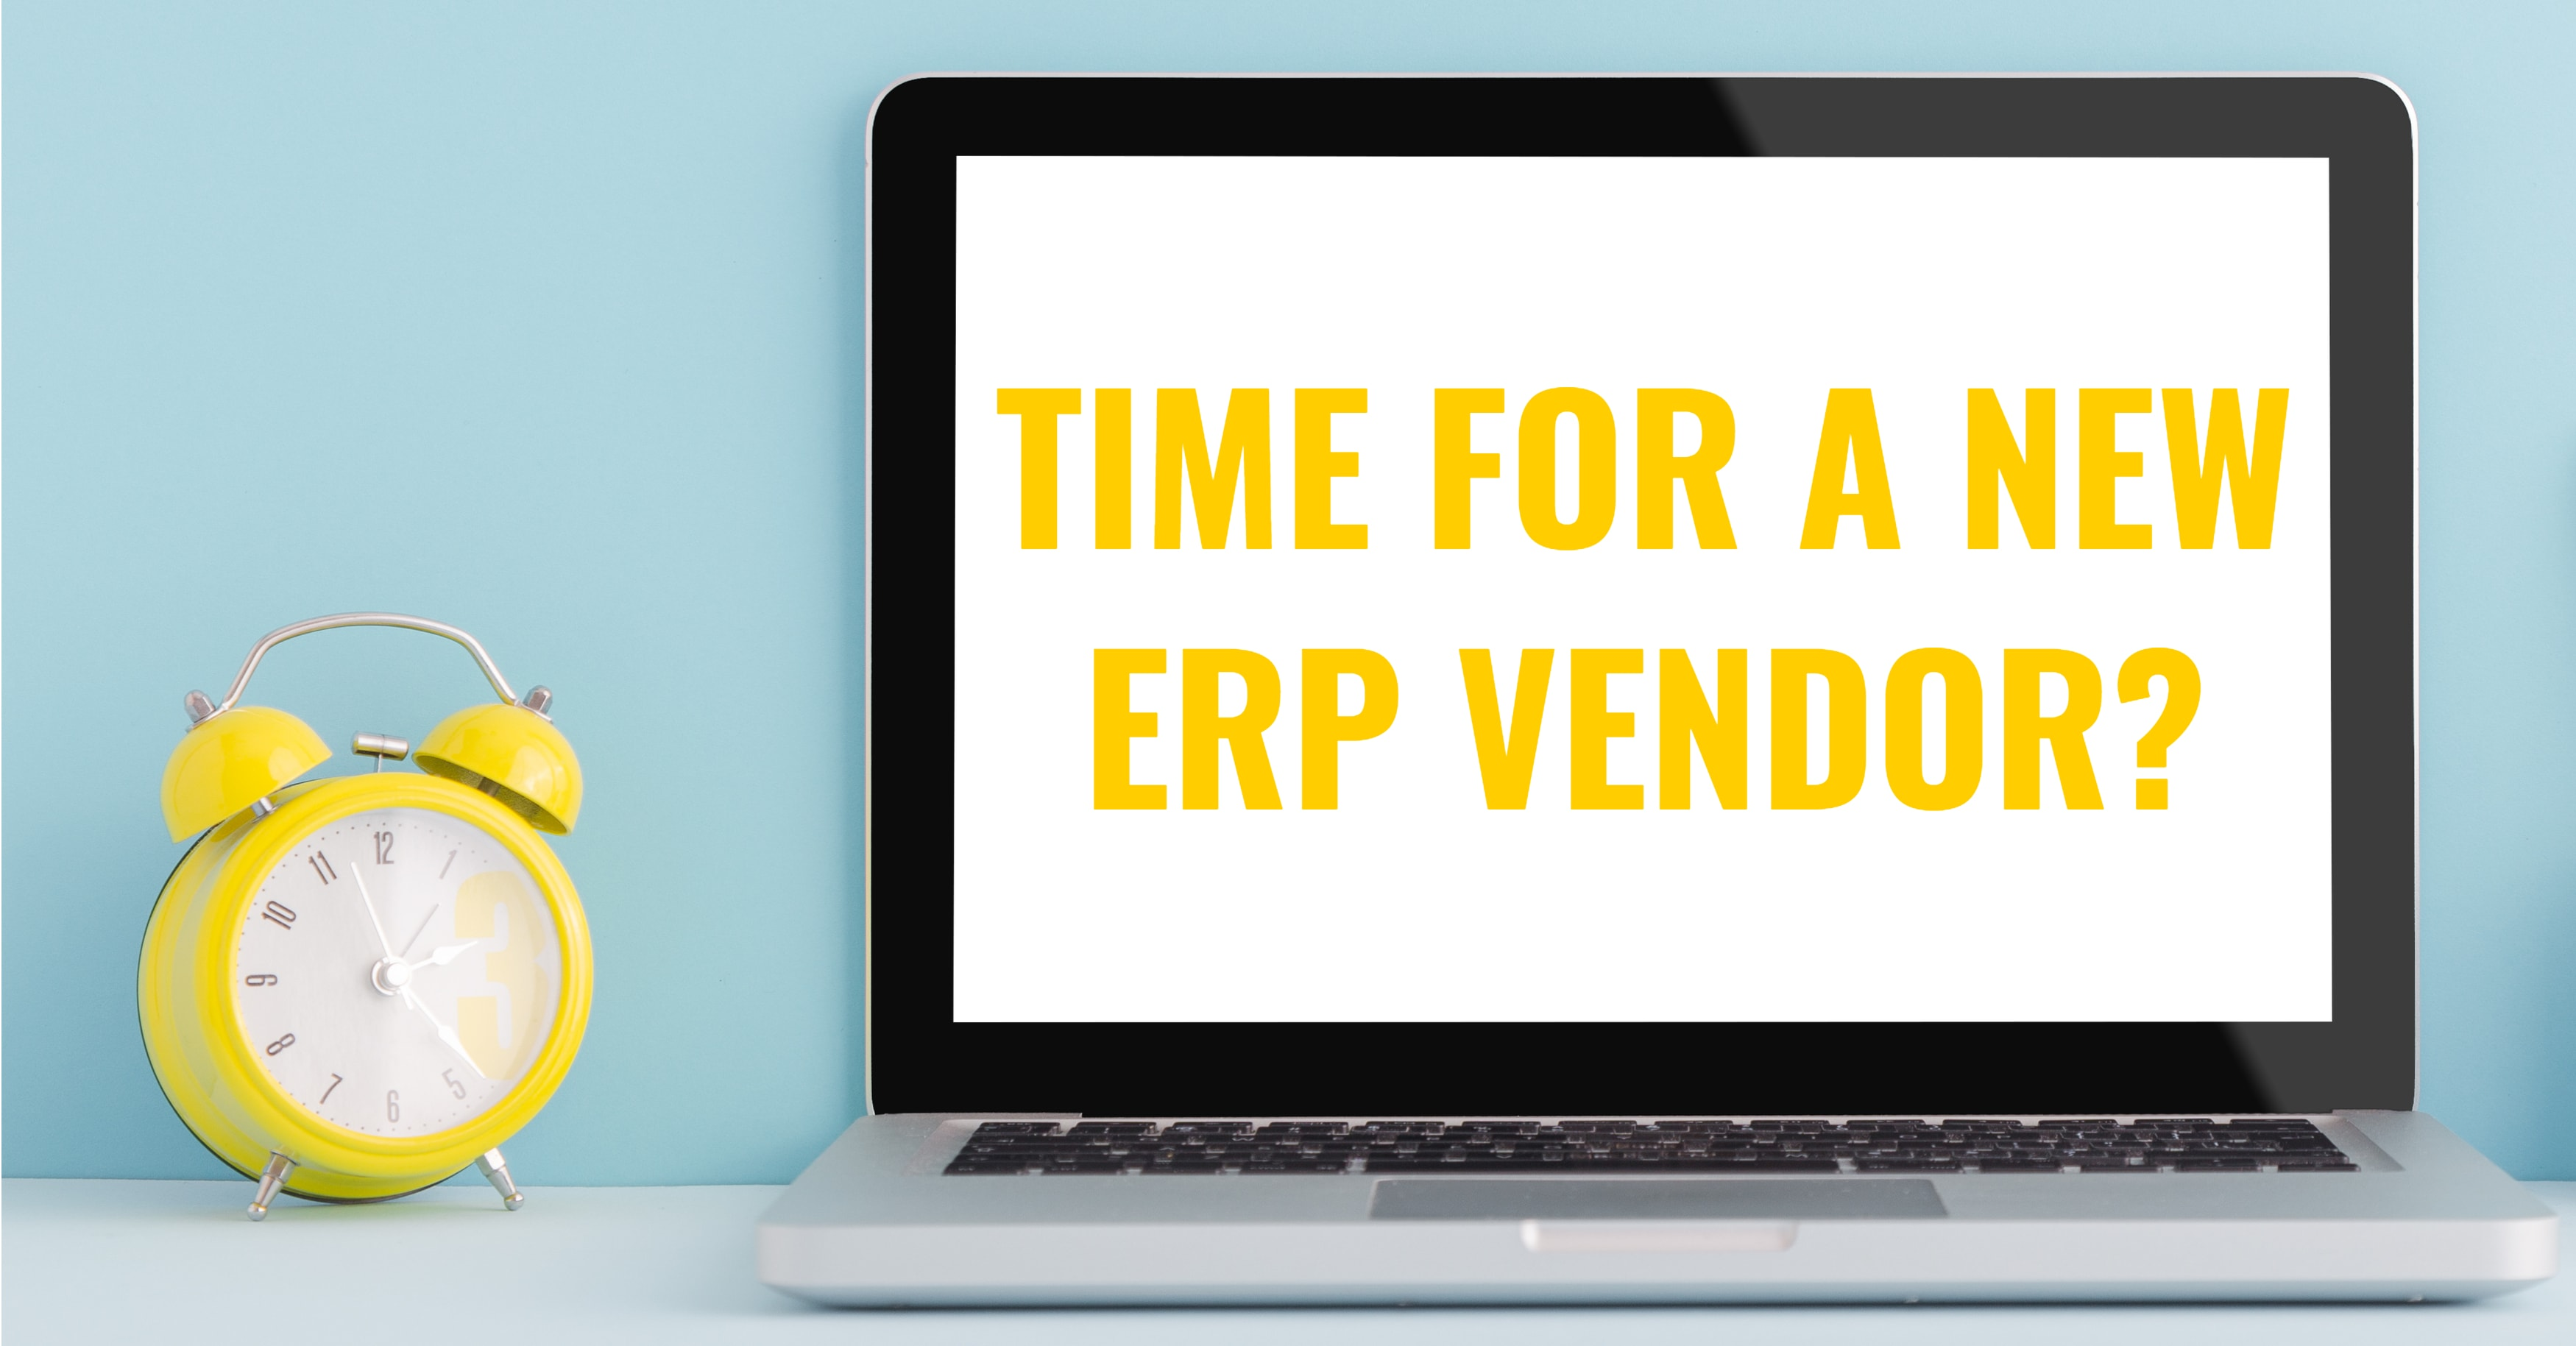 Time for a New ERP Vendor?